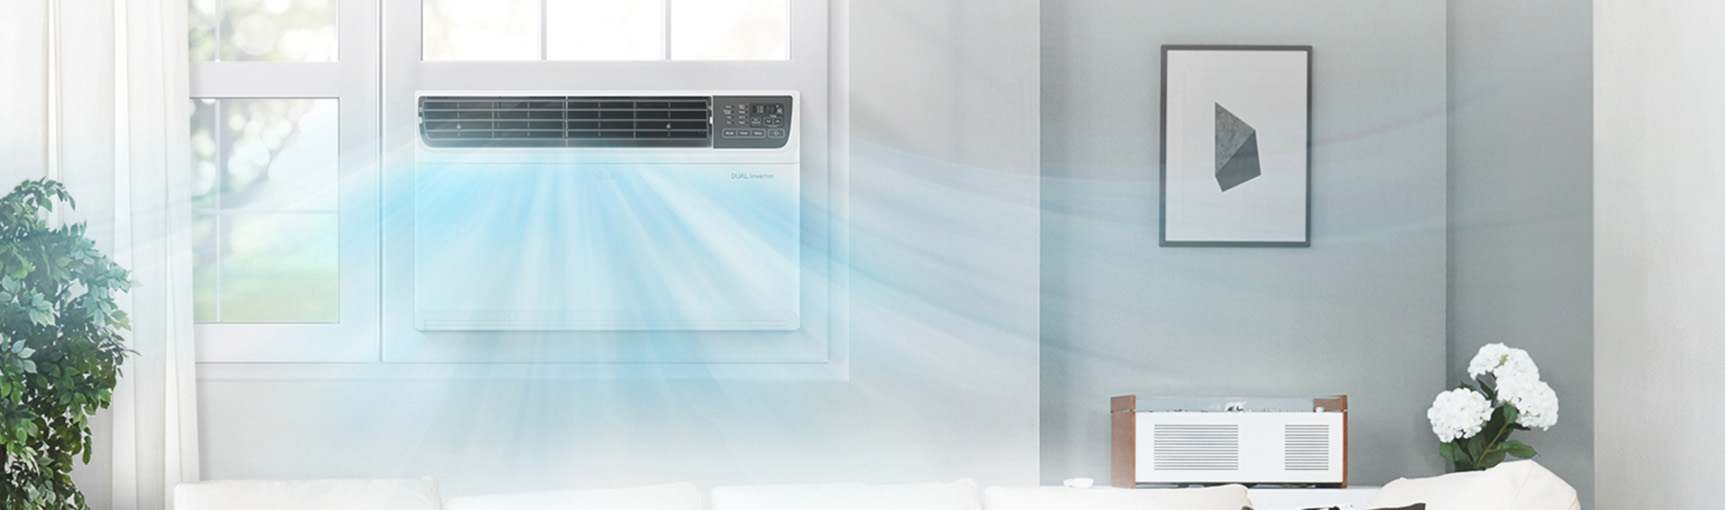 Reef Air Conditioning and Refrigeration